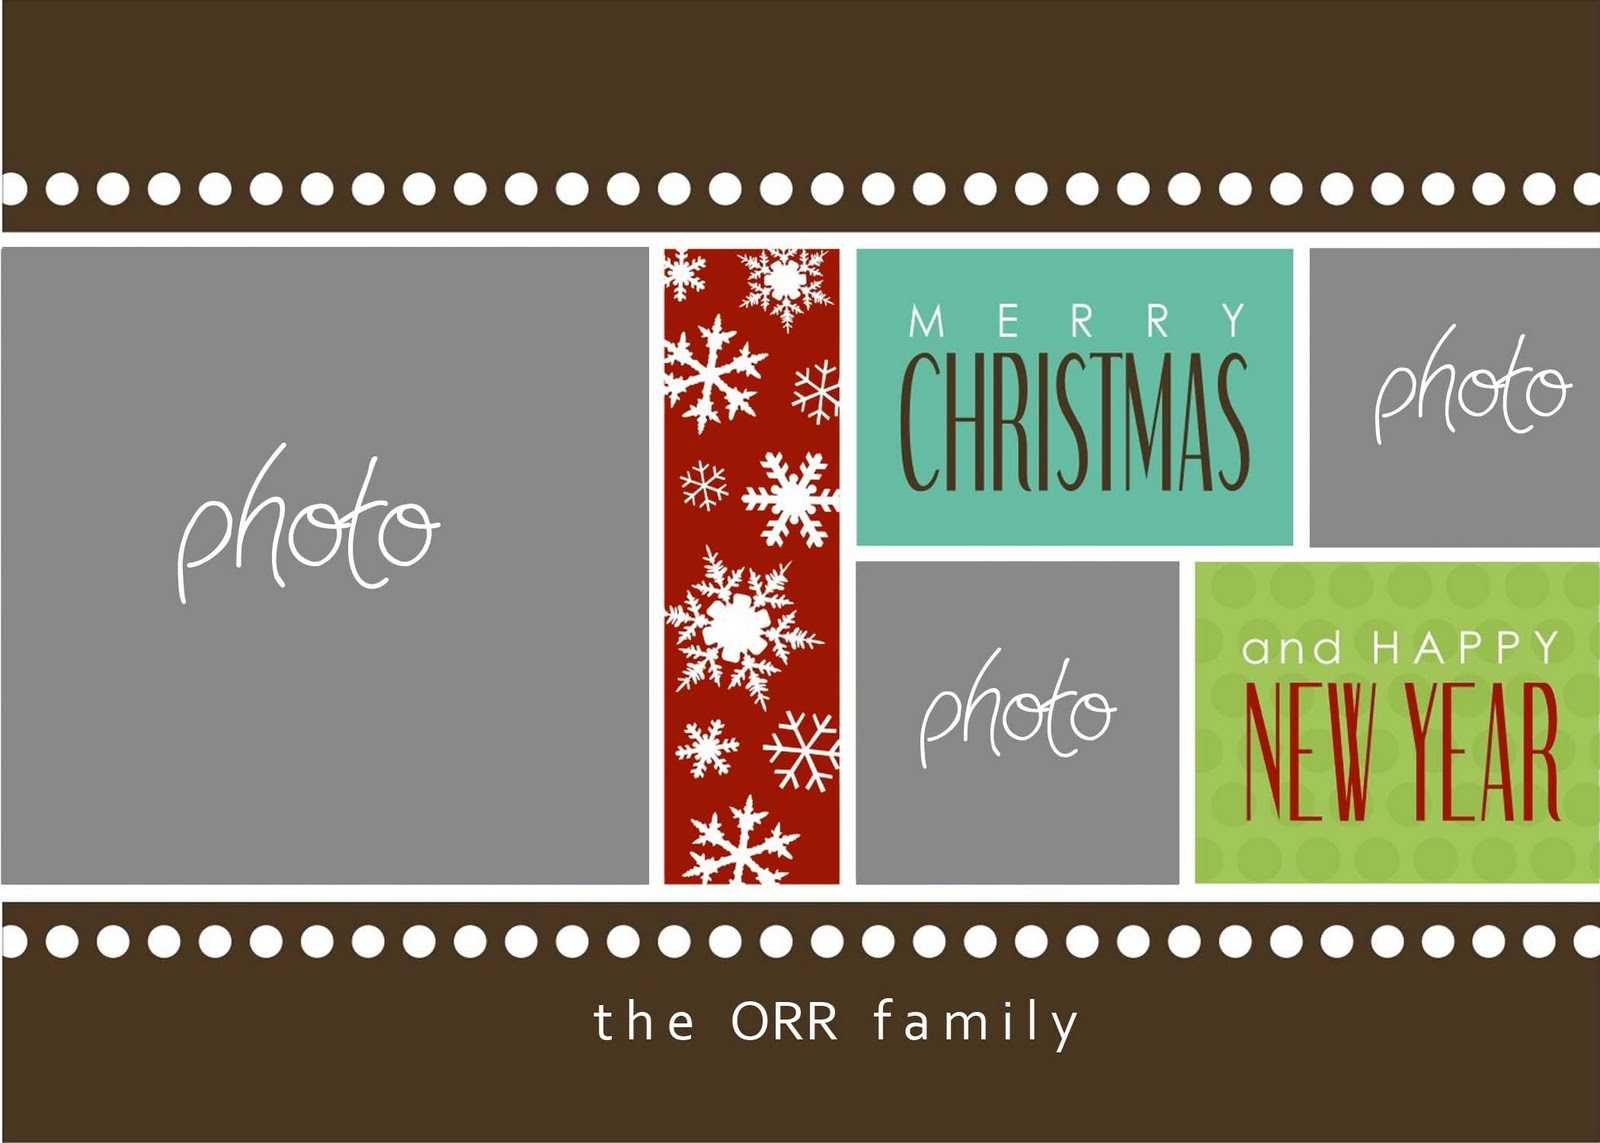 Christmas Cards Templates Photoshop ] - Christmas Card Inside Free Christmas Card Templates For Photoshop